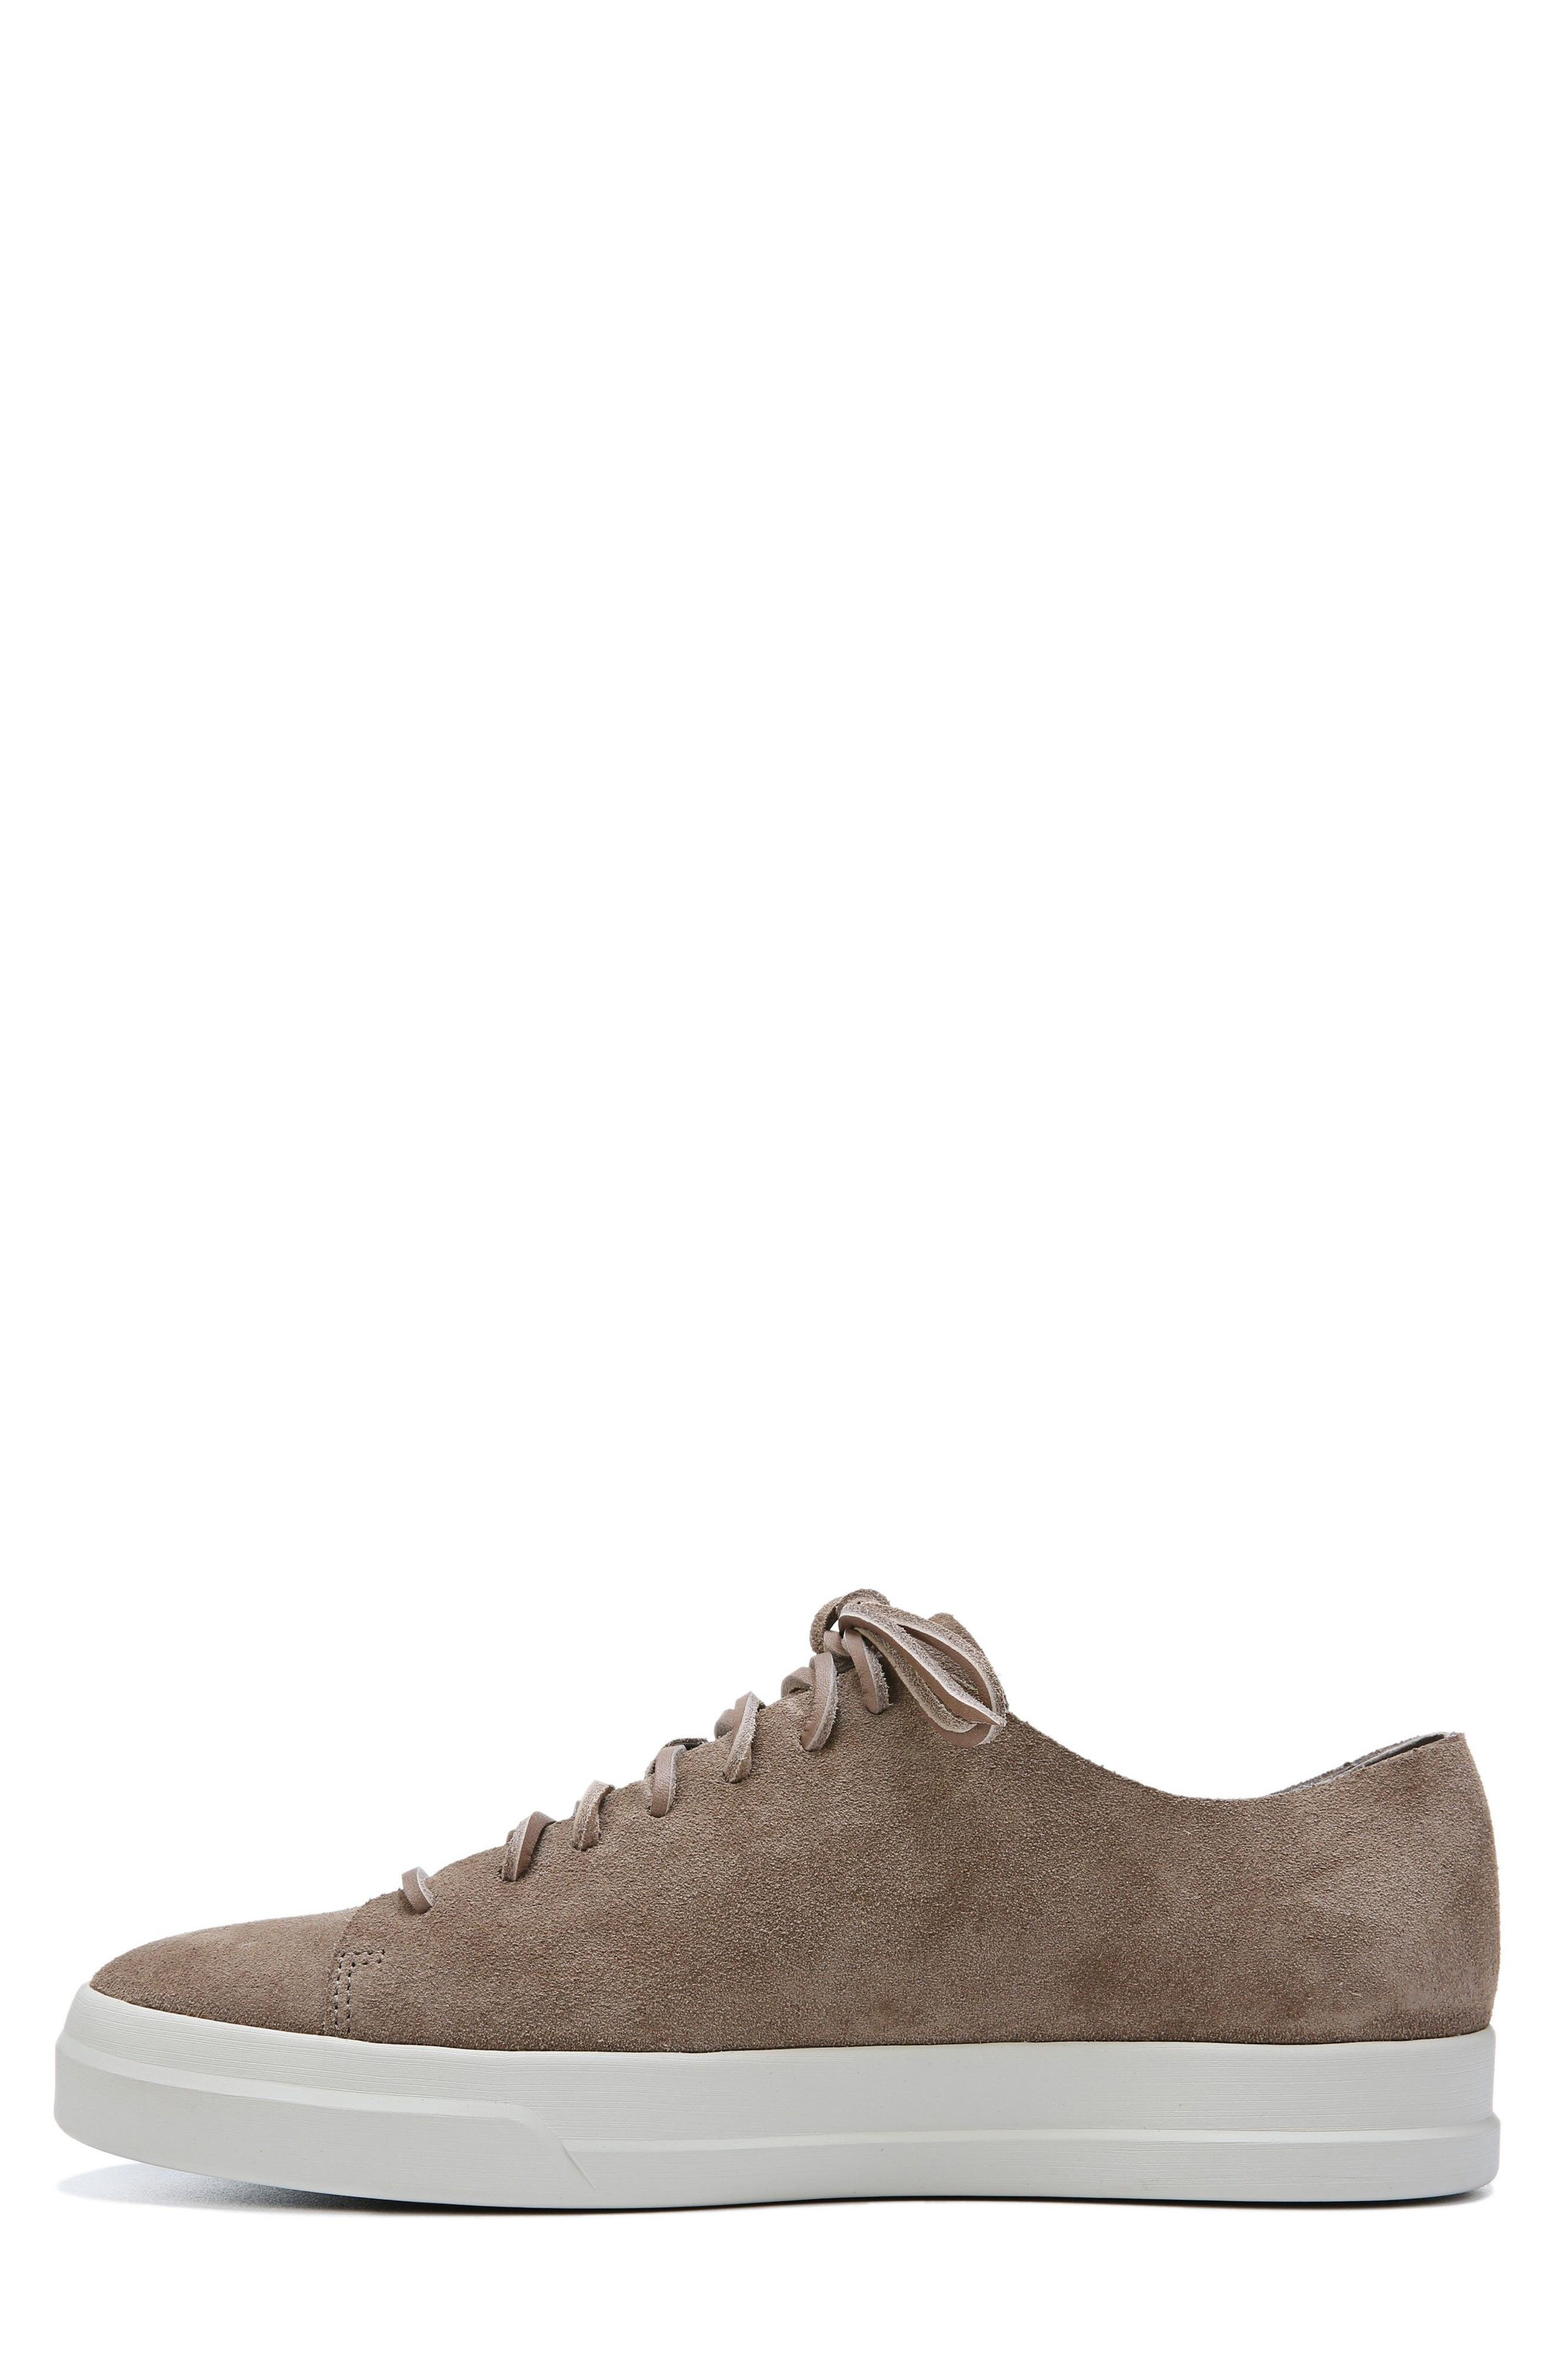 Copeland Sneaker,                             Alternate thumbnail 6, color,                             Flint Tan Suede